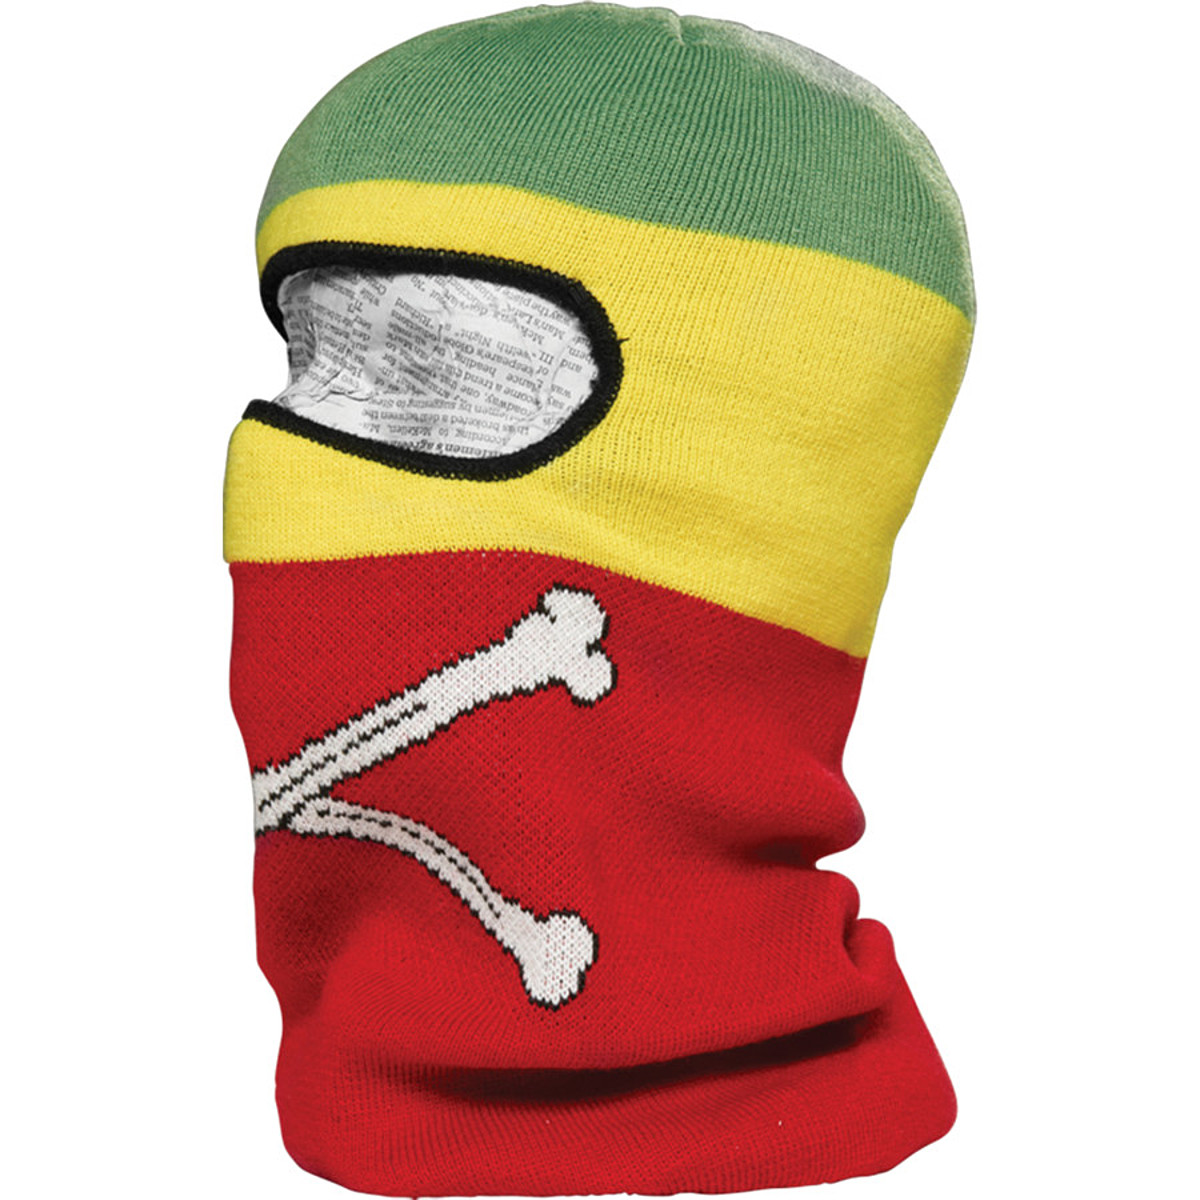 686 Snaggletooth Cross-Bones Balaclava